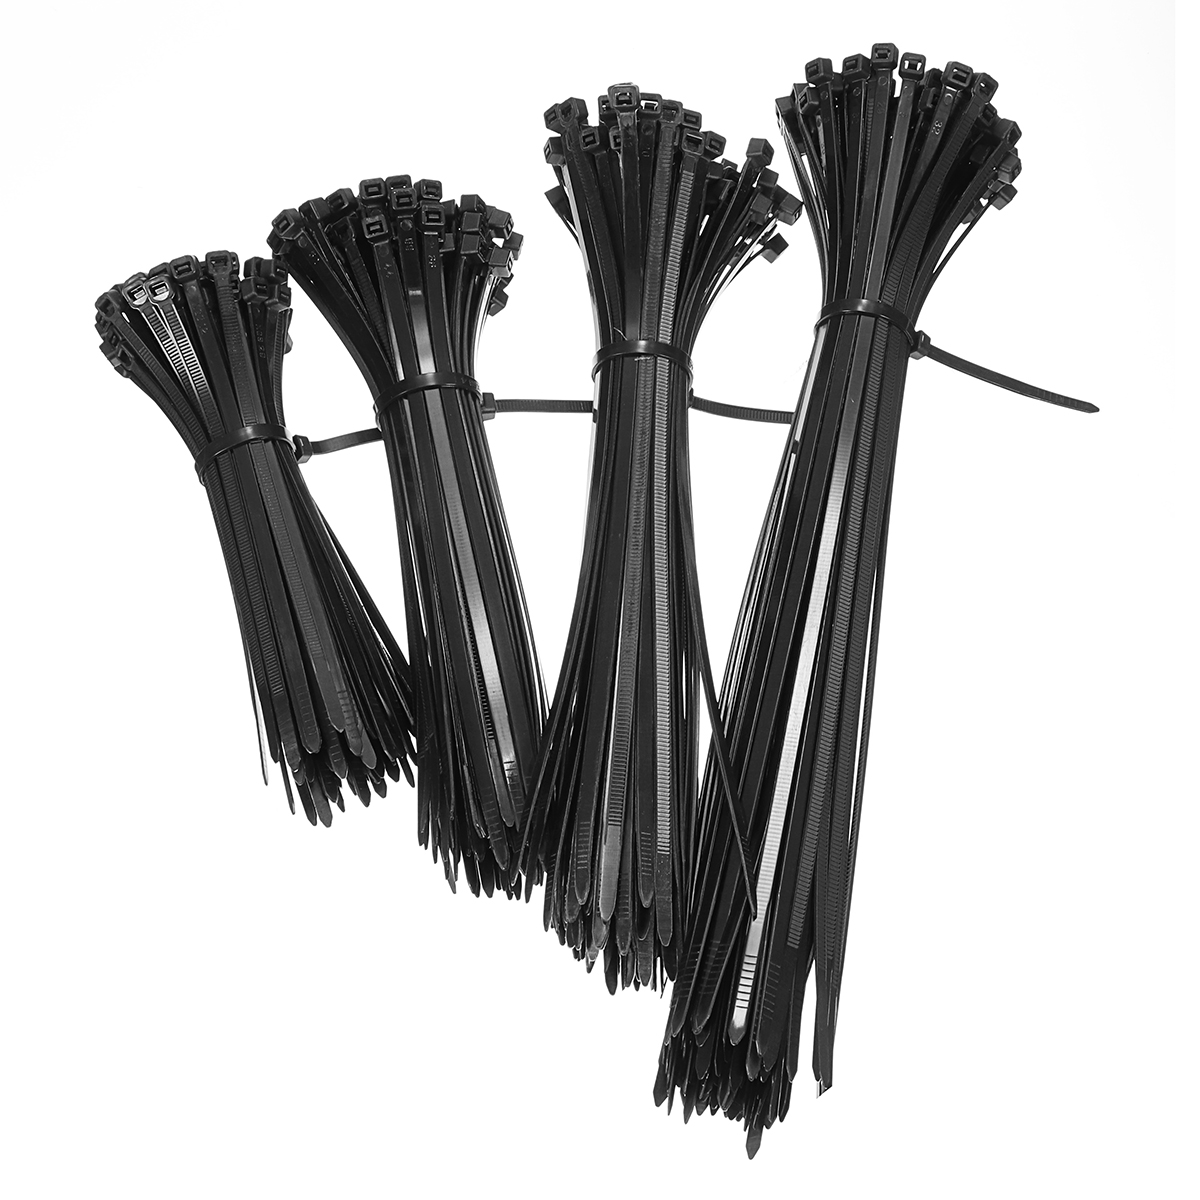 100pcs Black Nylon Plastic Network Cable Zip Tie Cord Strap Self-Locing Wire 150/200/250/300mm Zip Trim Wrap Cable Loop Tie стариков н сост наполеон отец евросоюза isbn 9785496016087